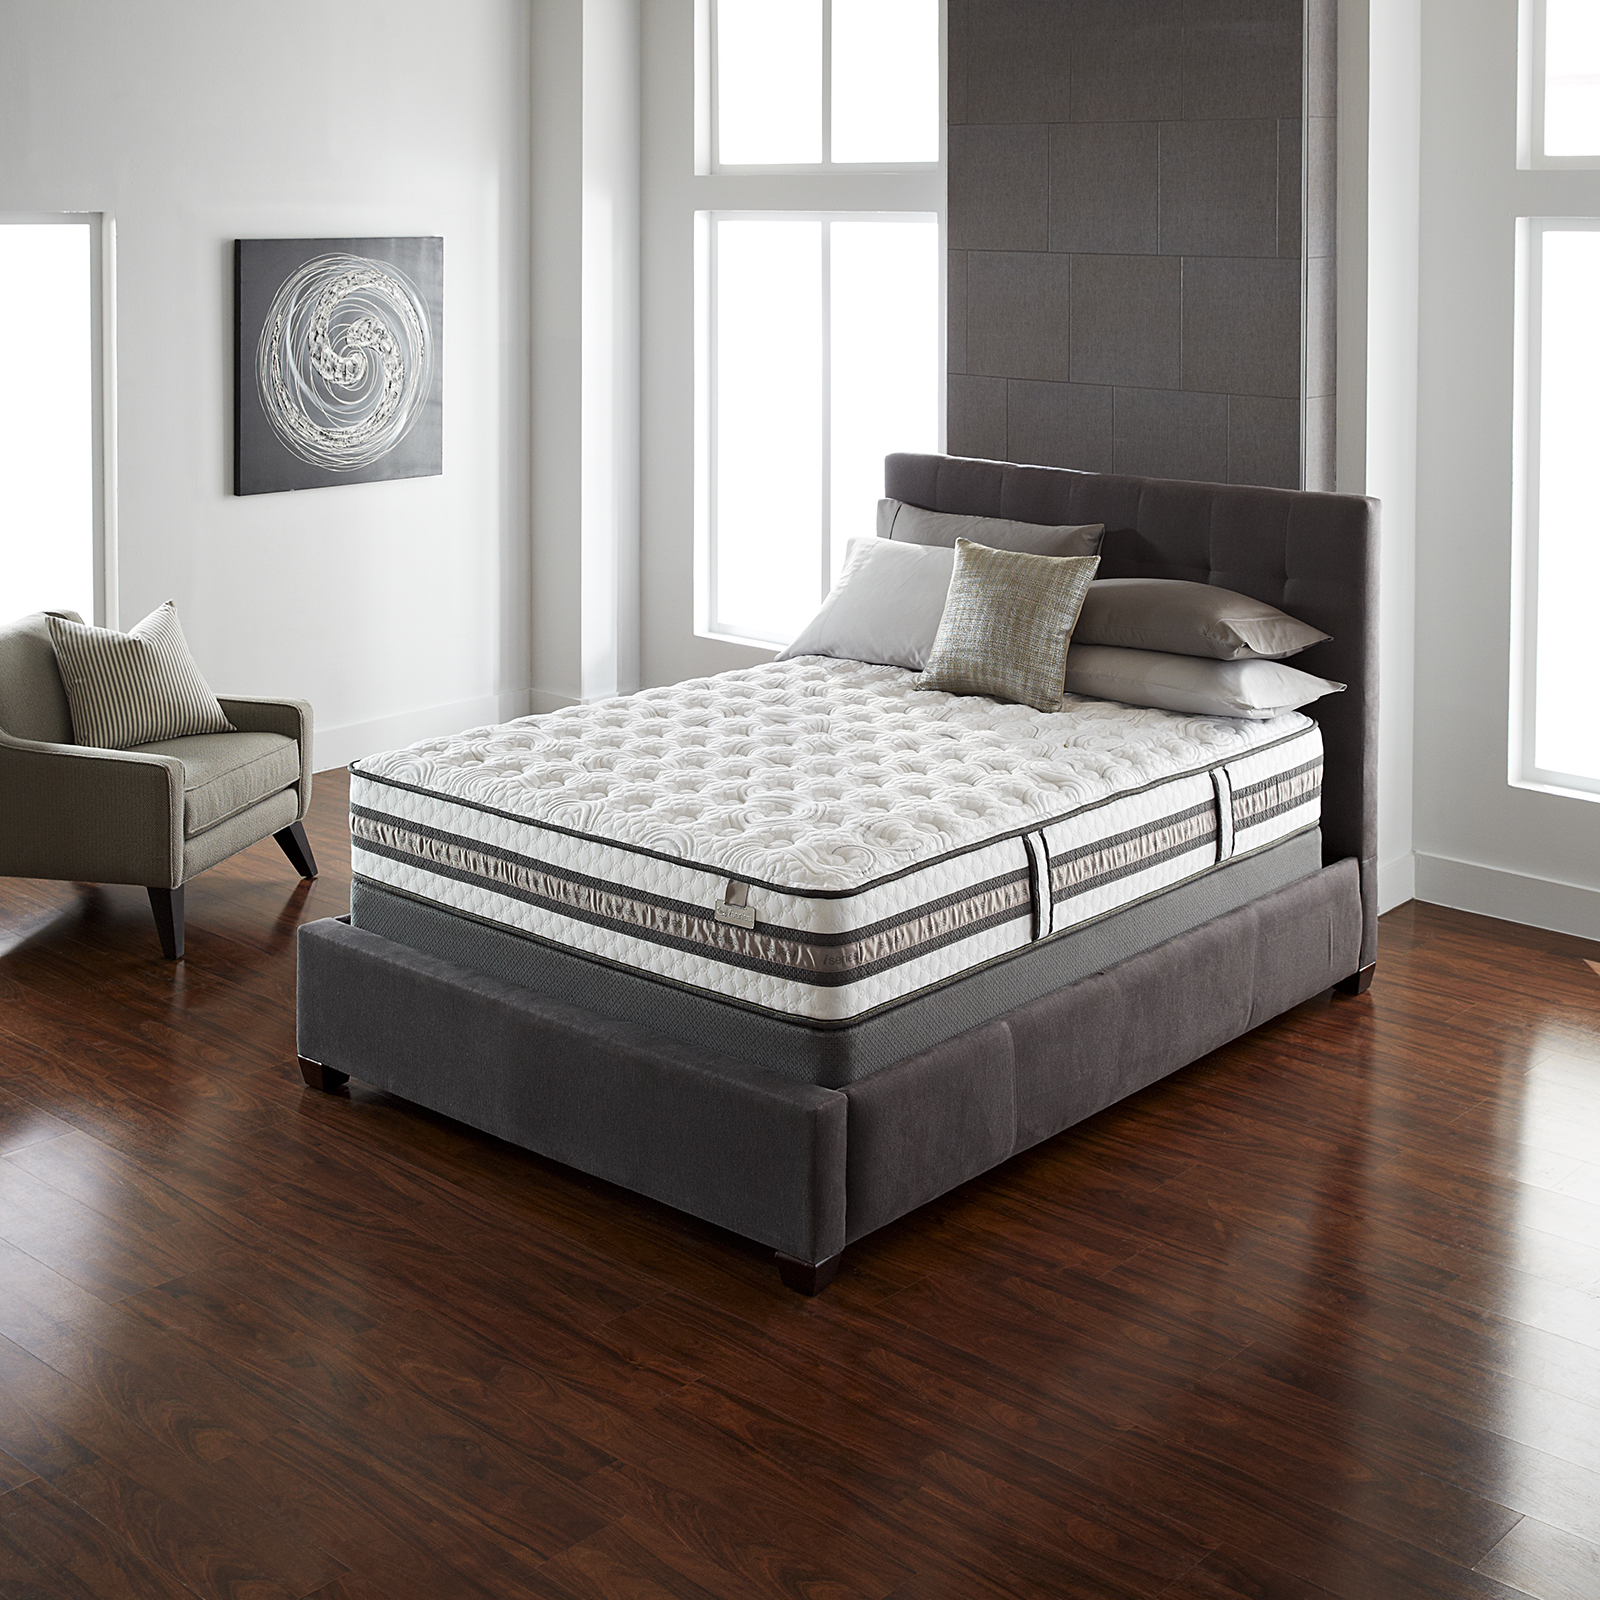 Serta iSeries Vantage Firm Queen Mattress Only